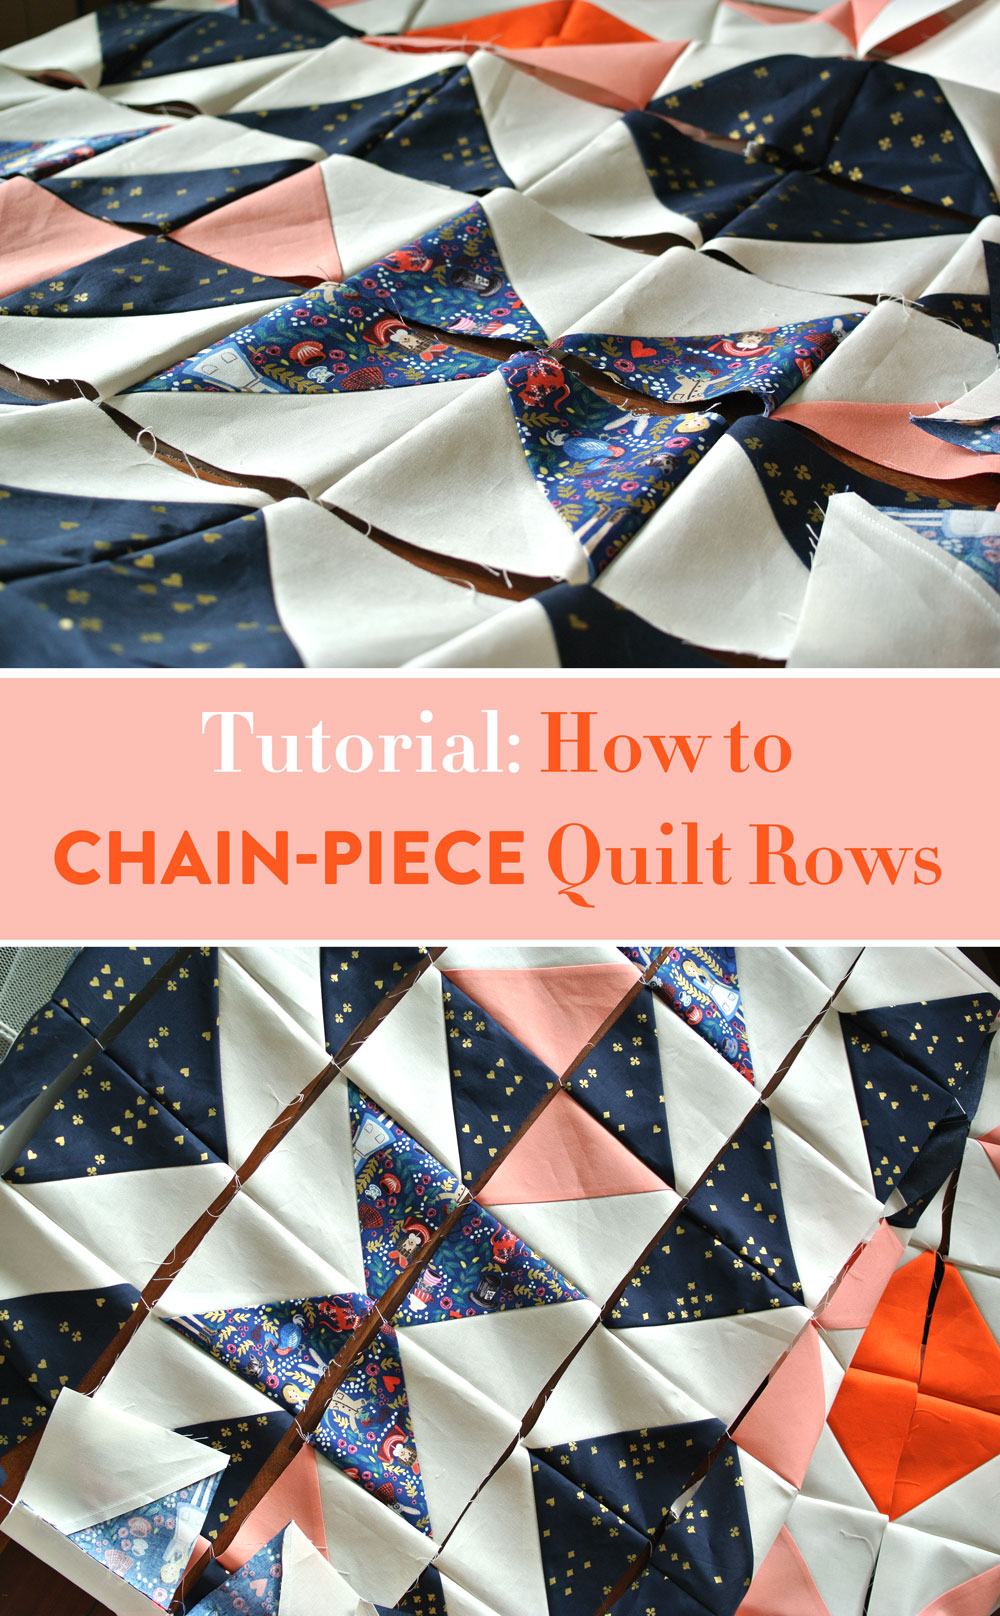 Quilting-tutorial-chain-piece-rows